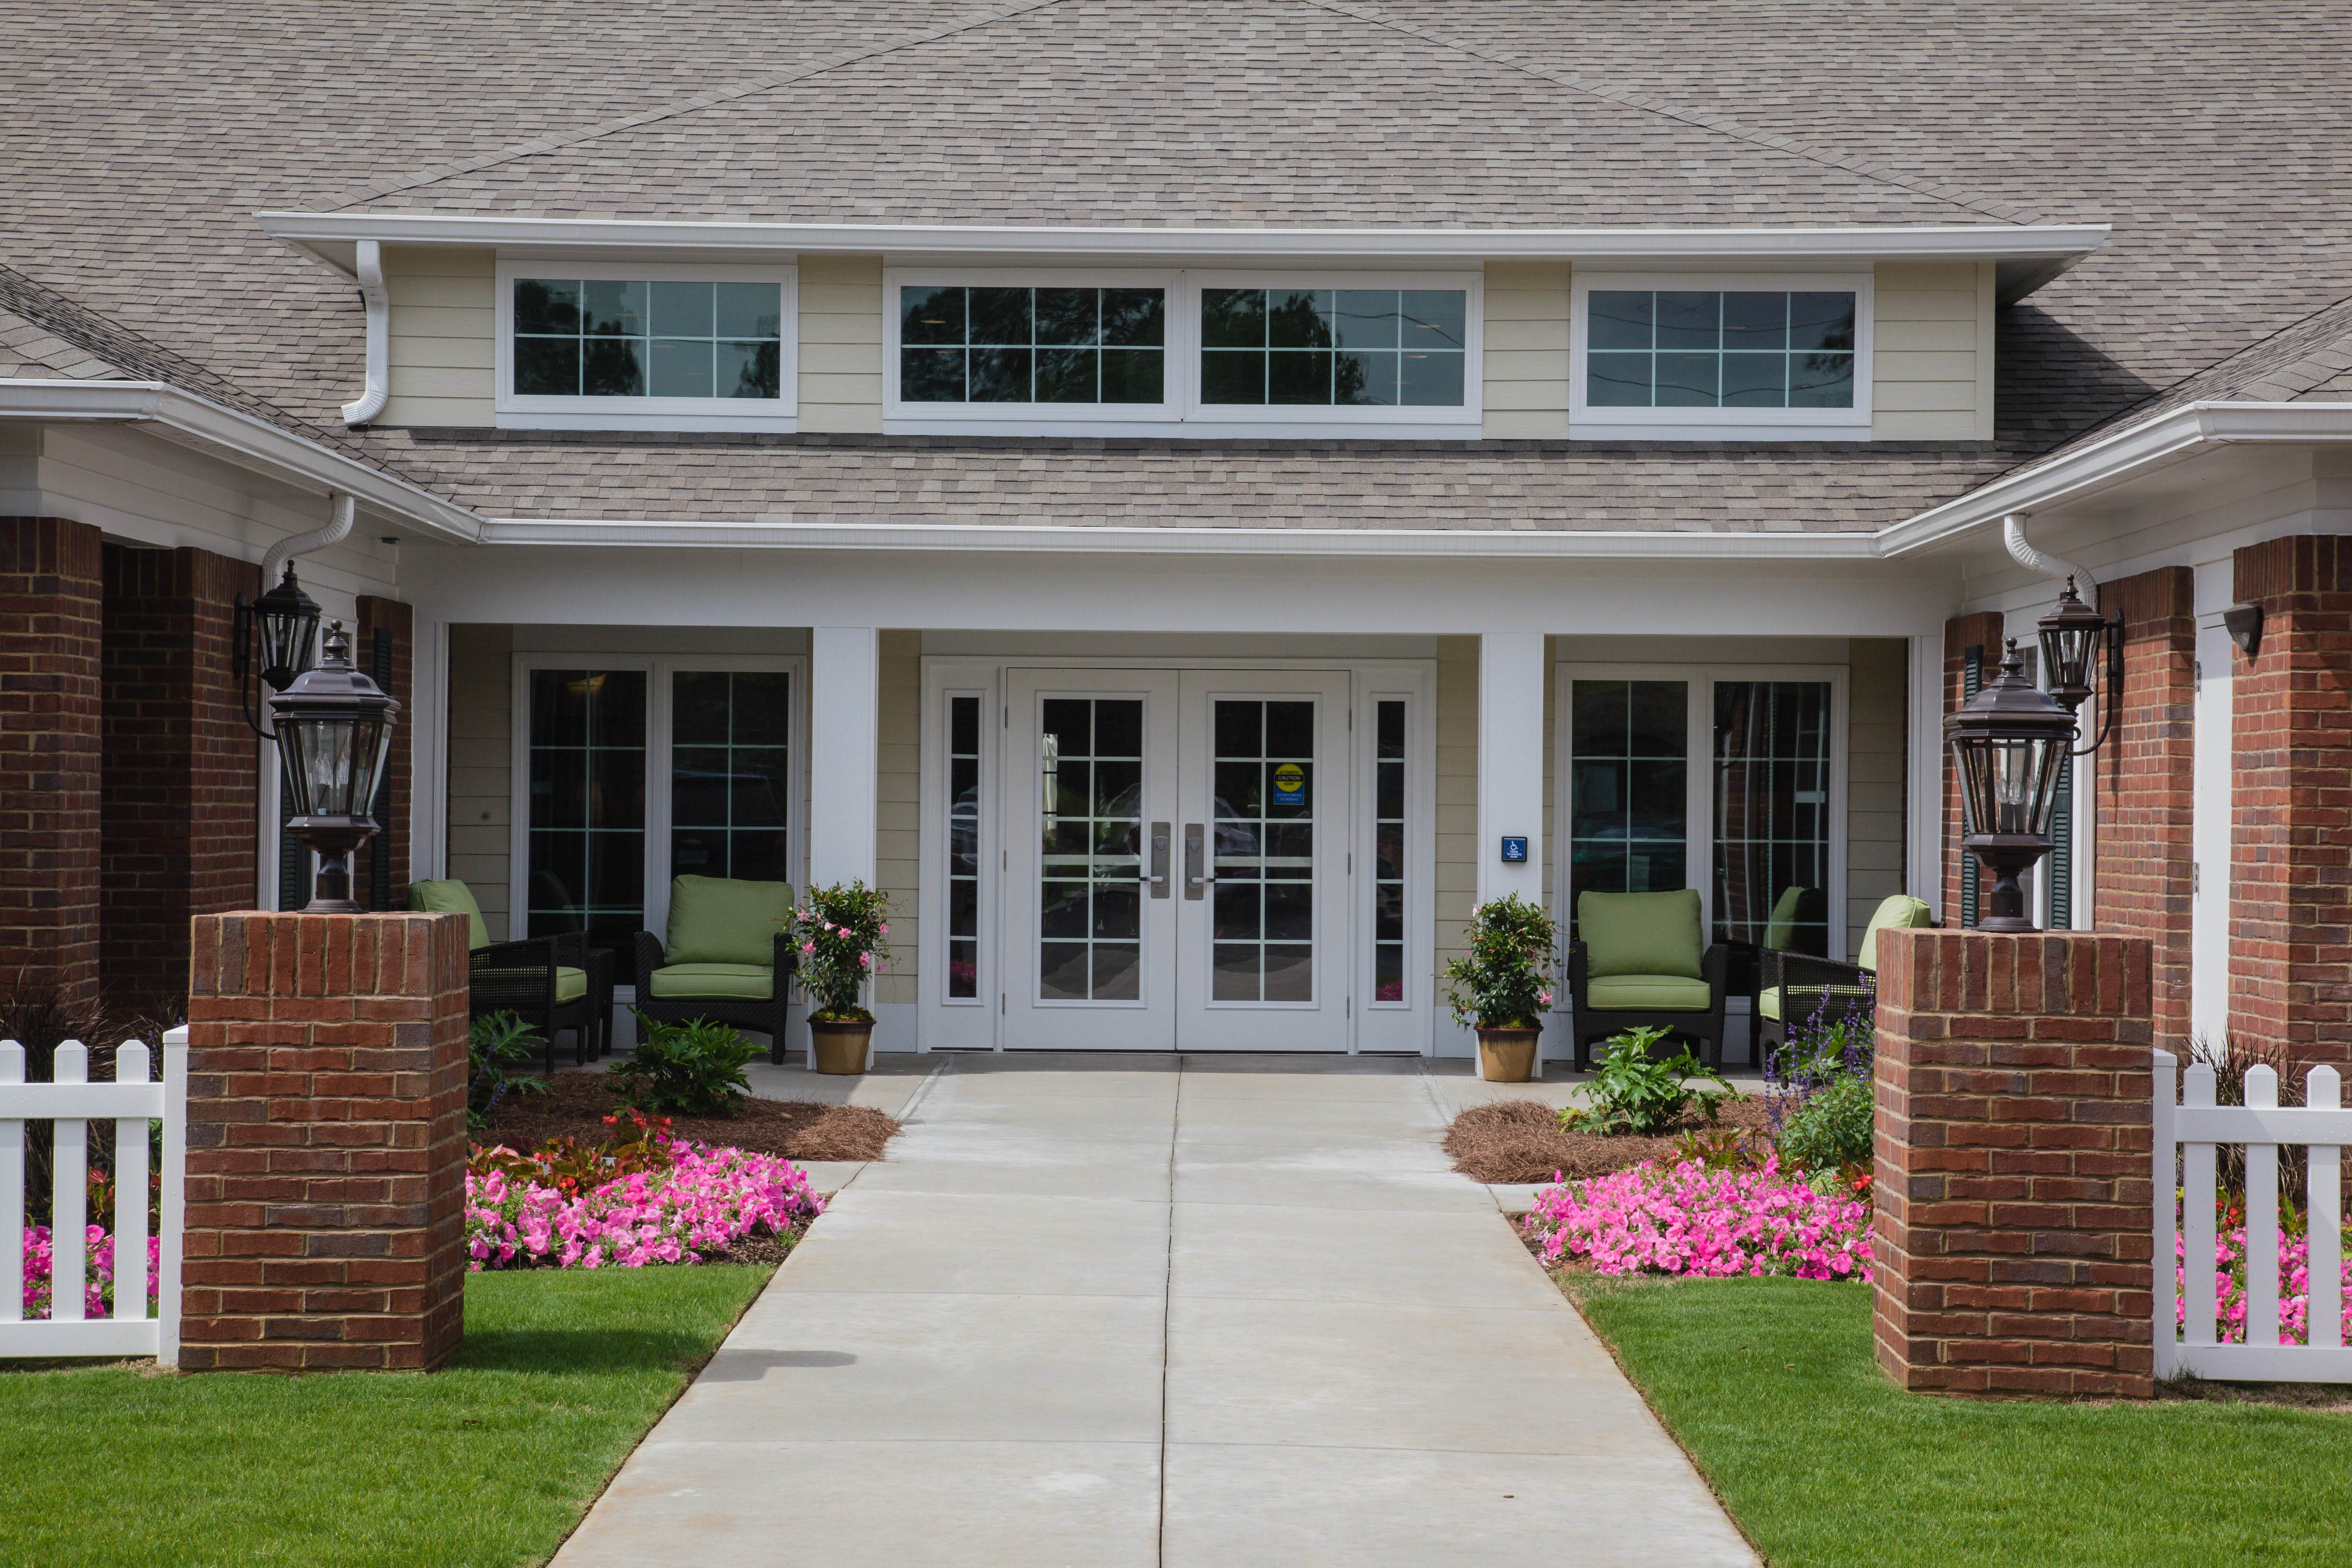 Photo 1 of Country Place Senior Living of Fairhope